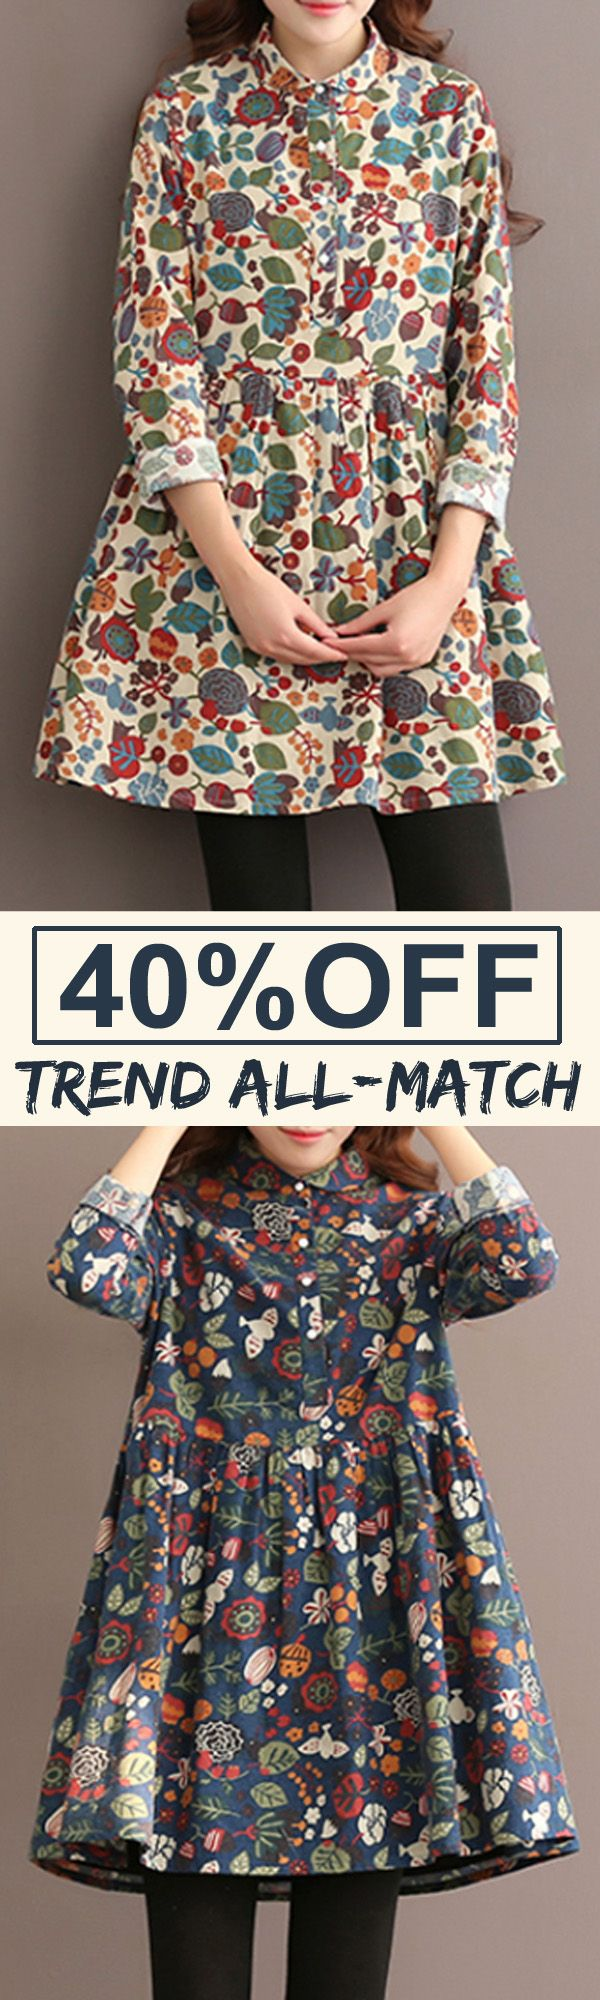 40%OFF&Free shipping. Vintage Women Floral Printed Single-Breasted Long Sleeve Dresses. Color: Off White, Light Blue, Dark Blue. Size:S-5XL. Shop now~